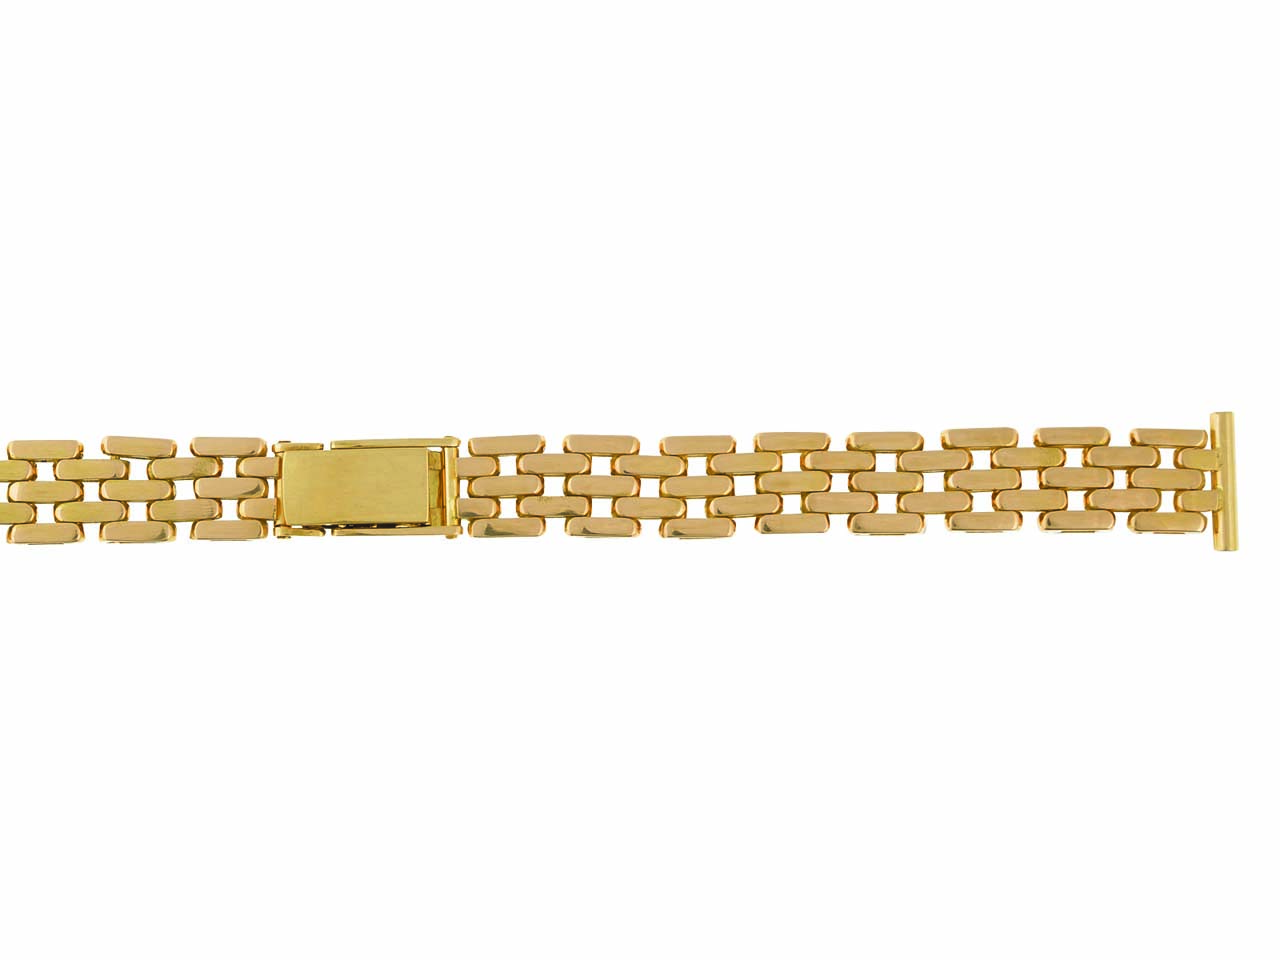 Bracelet montre Grain de Riz 16 mm, Or jaune 18k. Réf. 9044